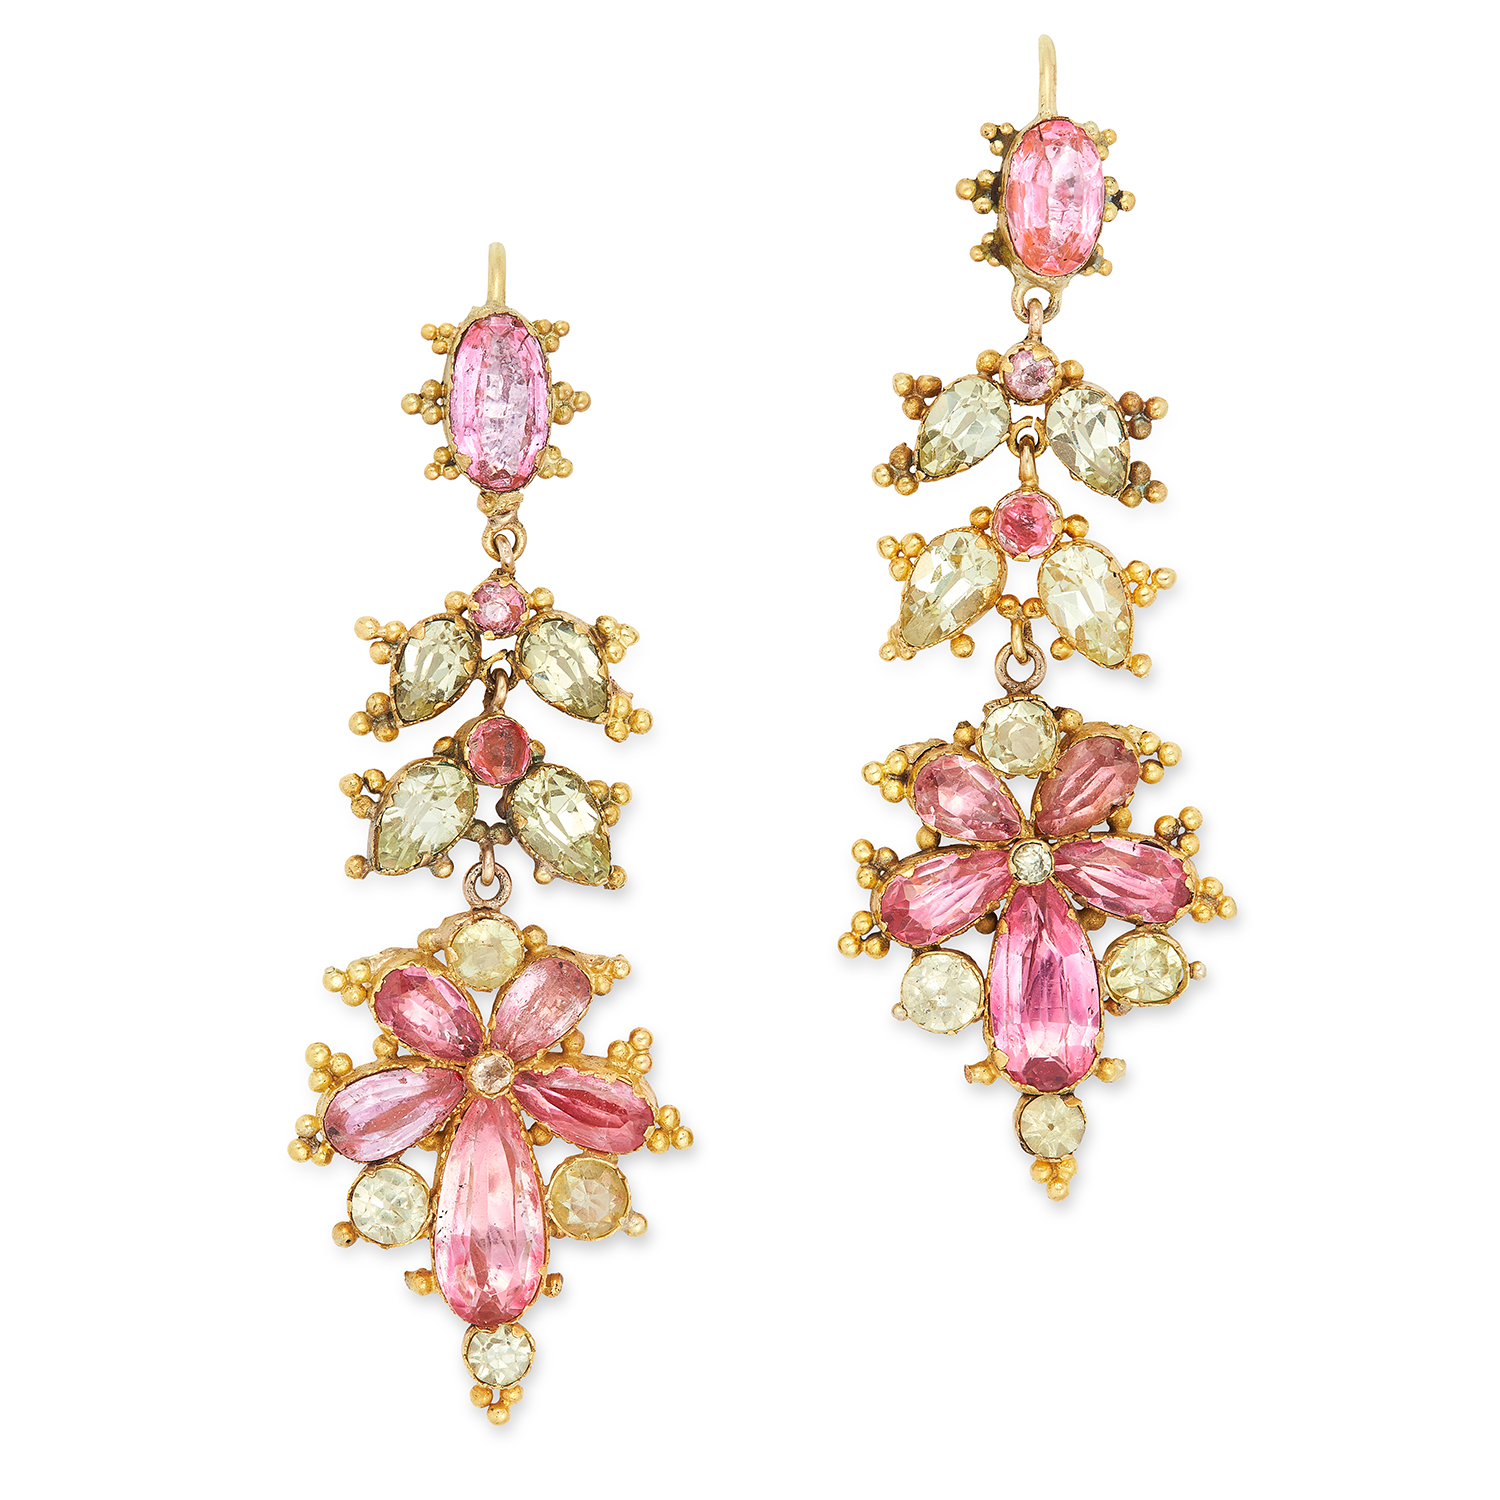 Los 43 - ANTIQUE PINK TOPAZ AND CHRYSOBERYL EARRINGS set with round, oval and pear cut pink topaz and